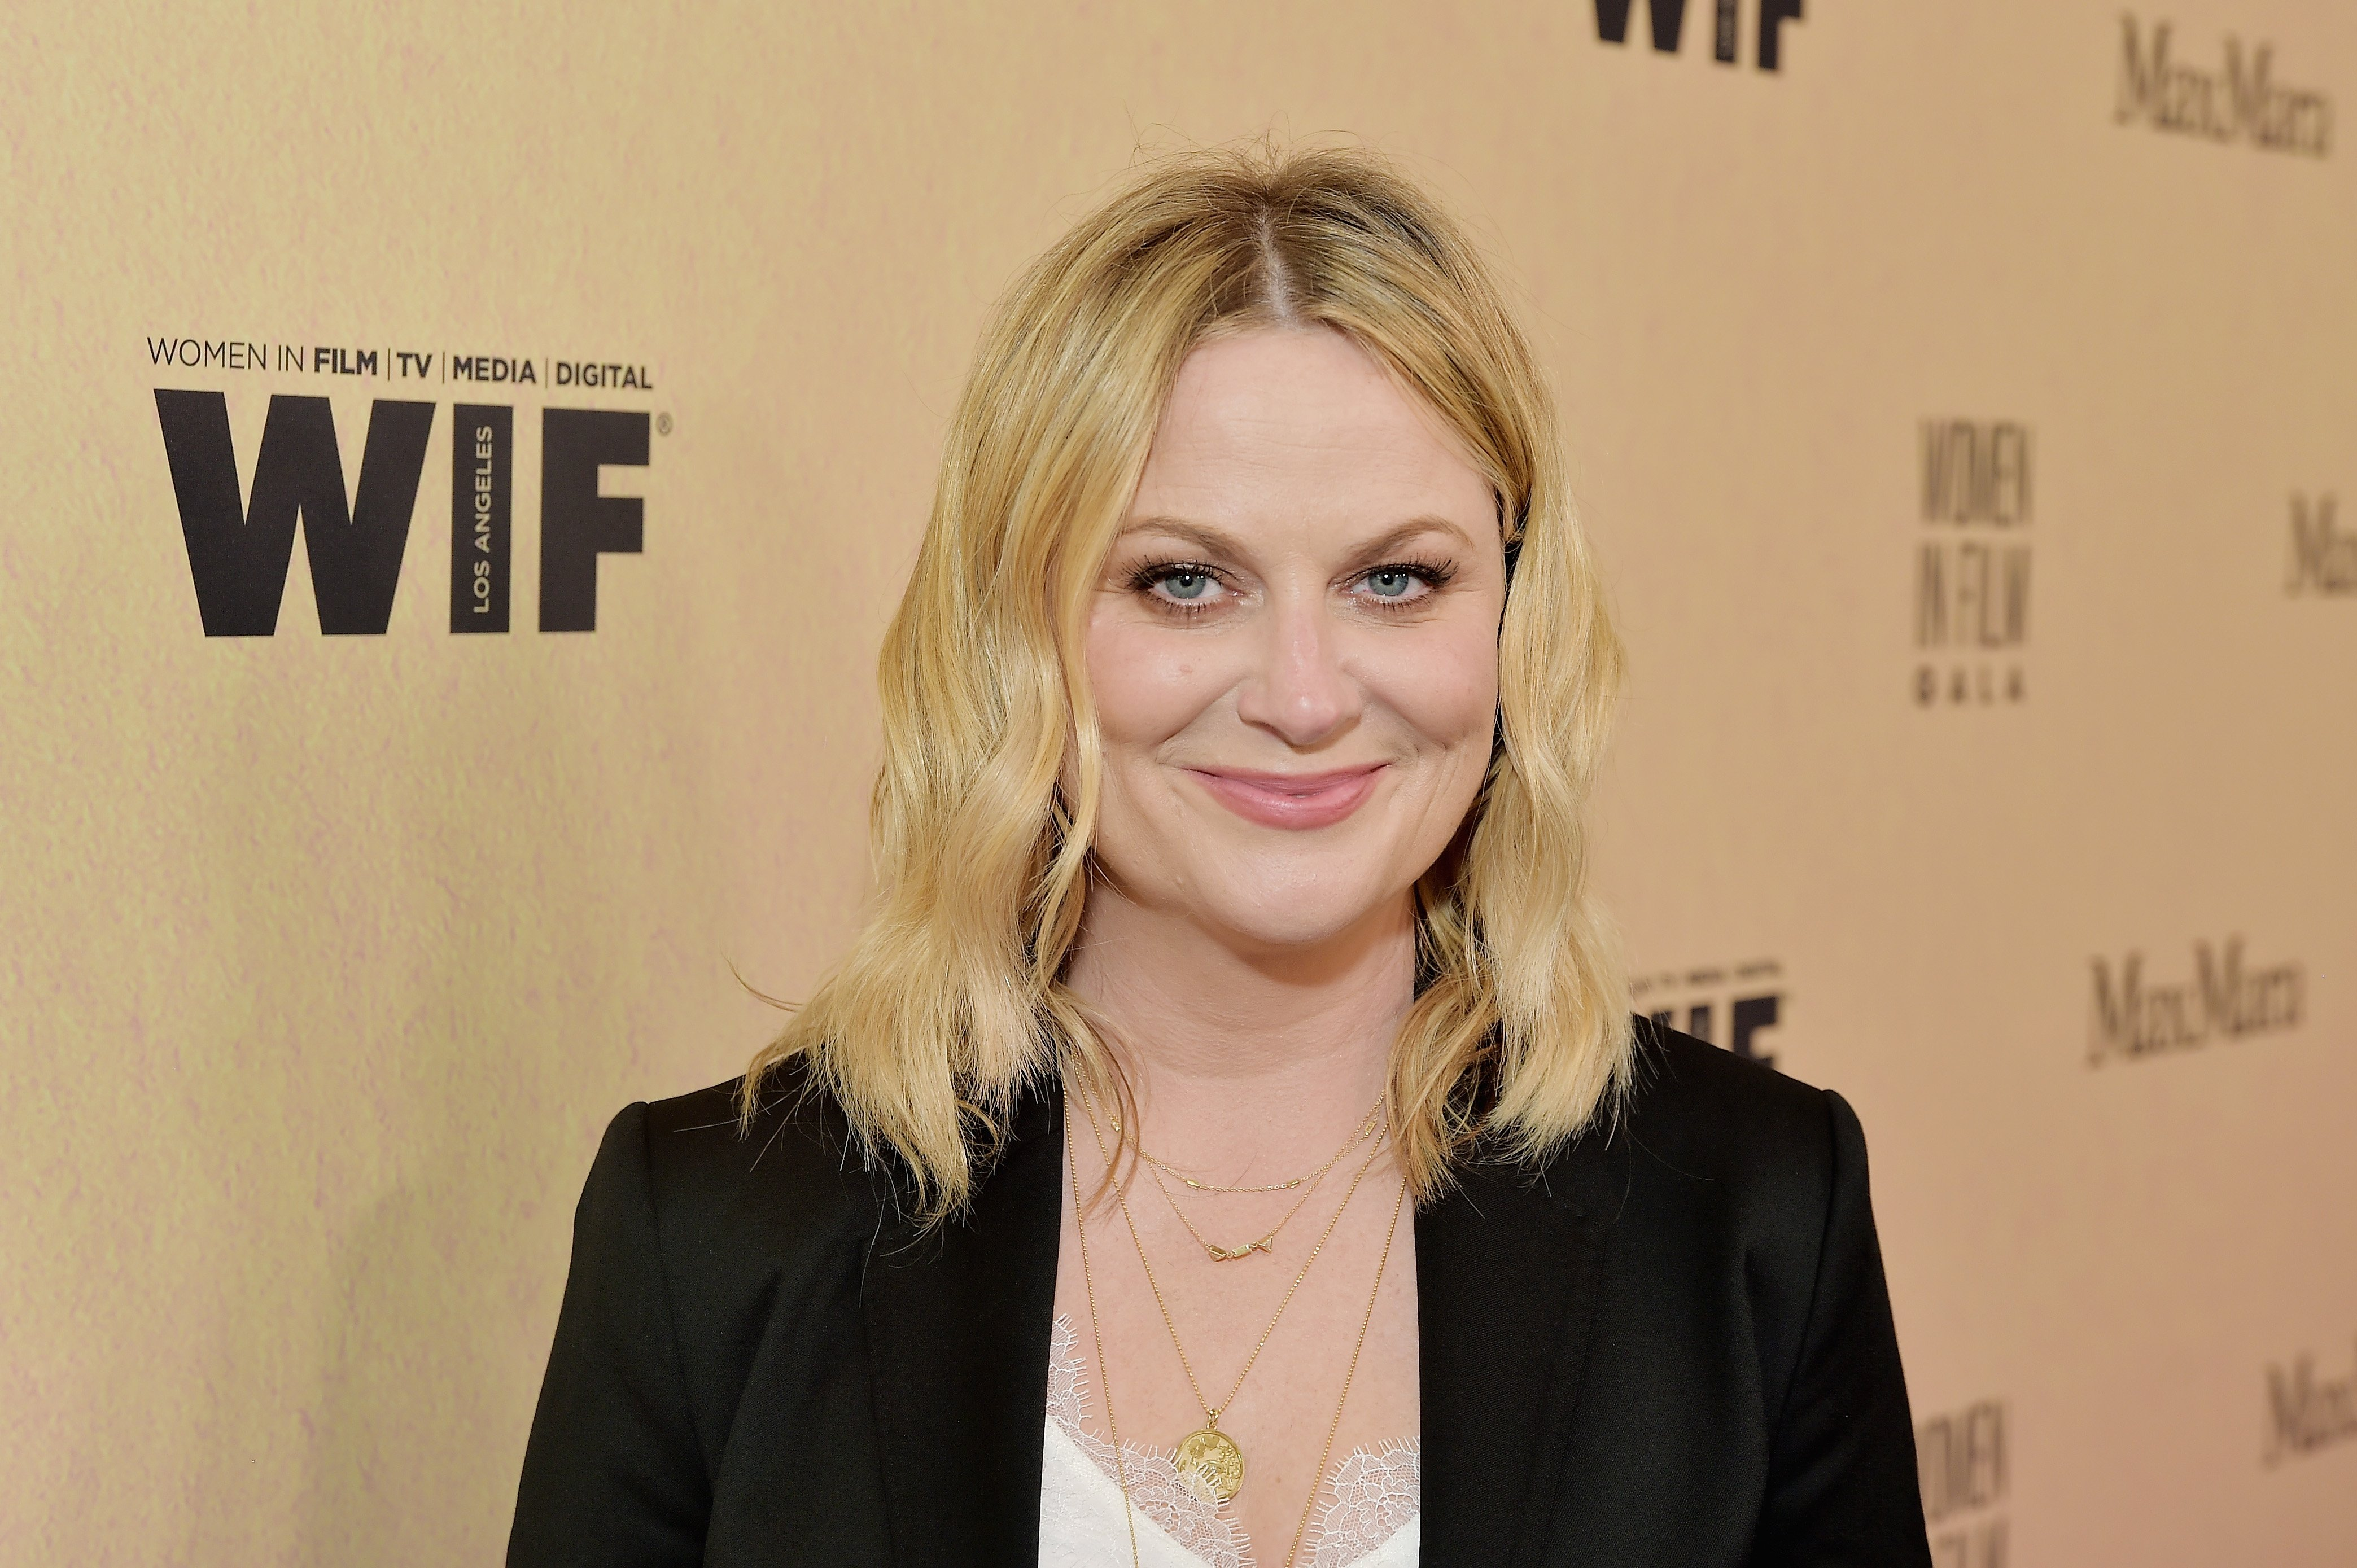 Amy Poehler attends the 2019 Women In Film Annual Gala at The Beverly Hilton on June 12, 2019 in Beverly Hills, California | Photo: GettyImages